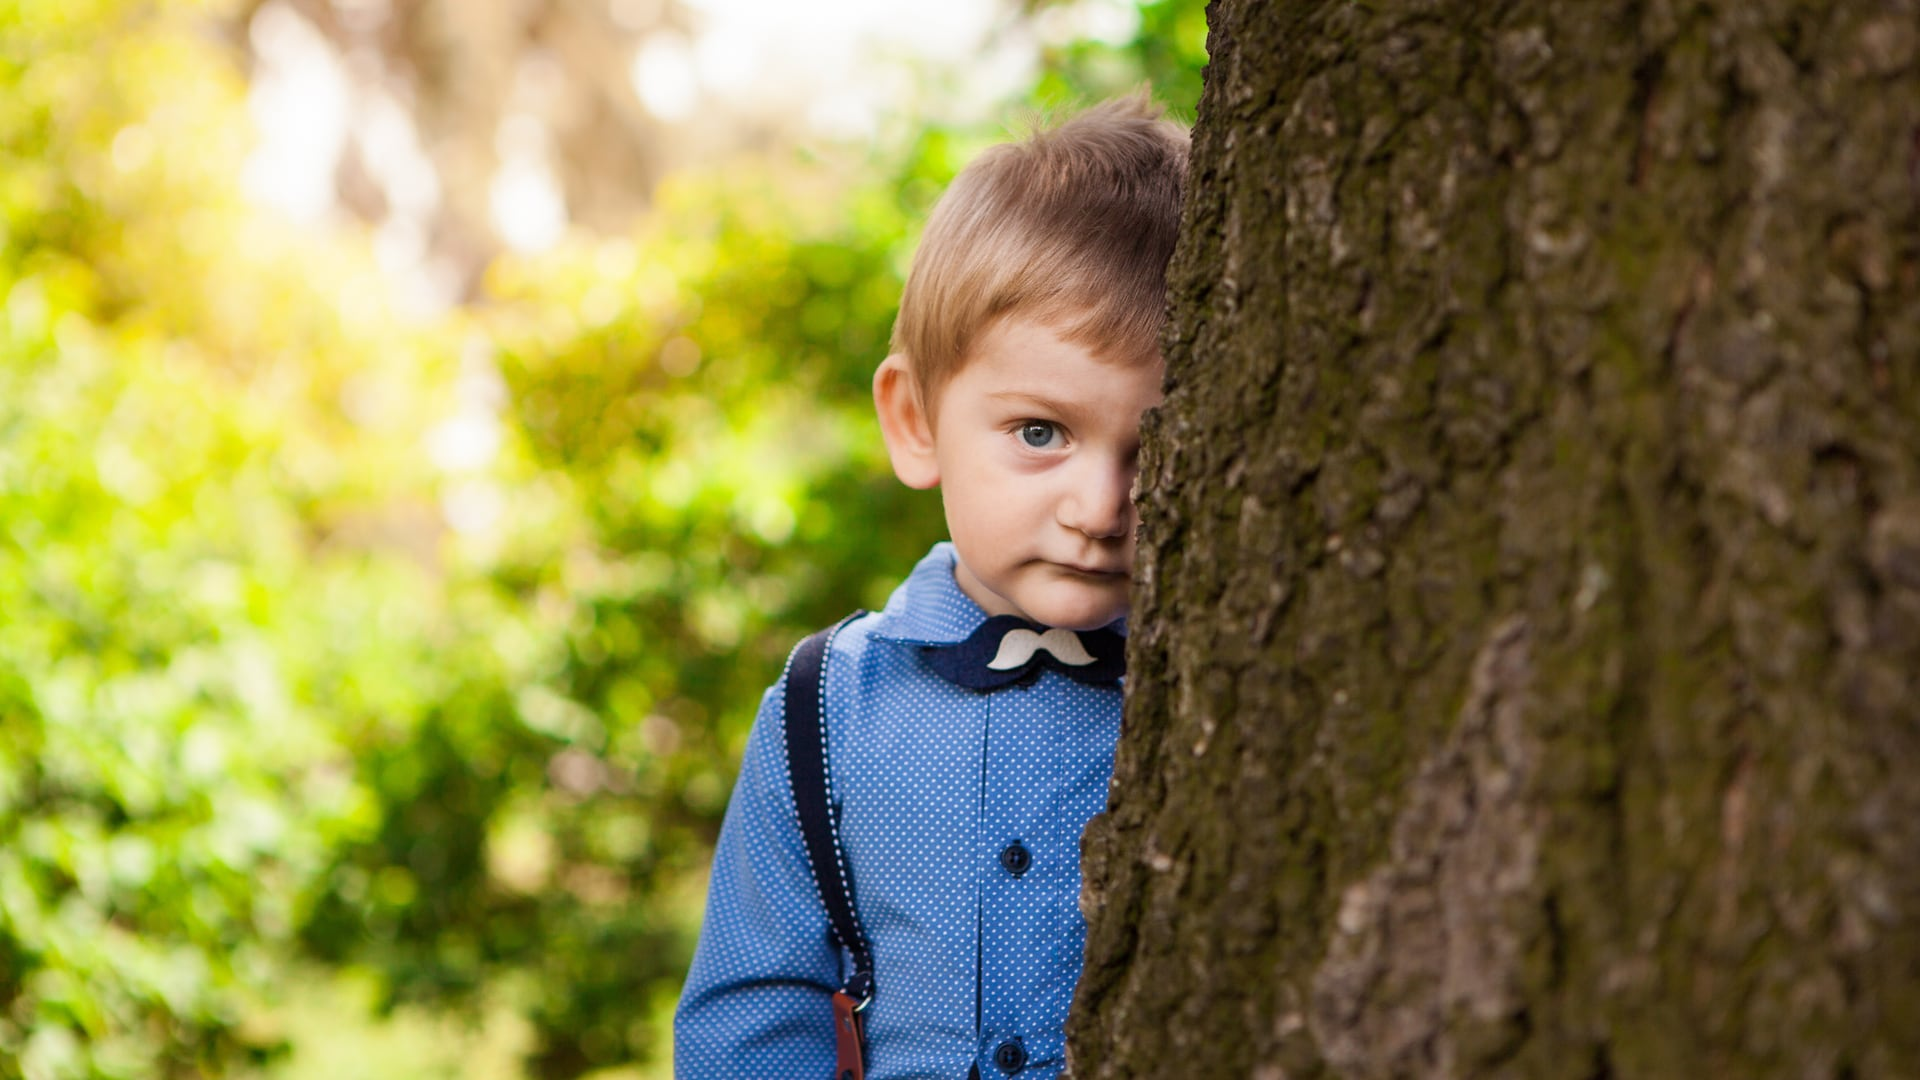 A say child looking out from behind a tree